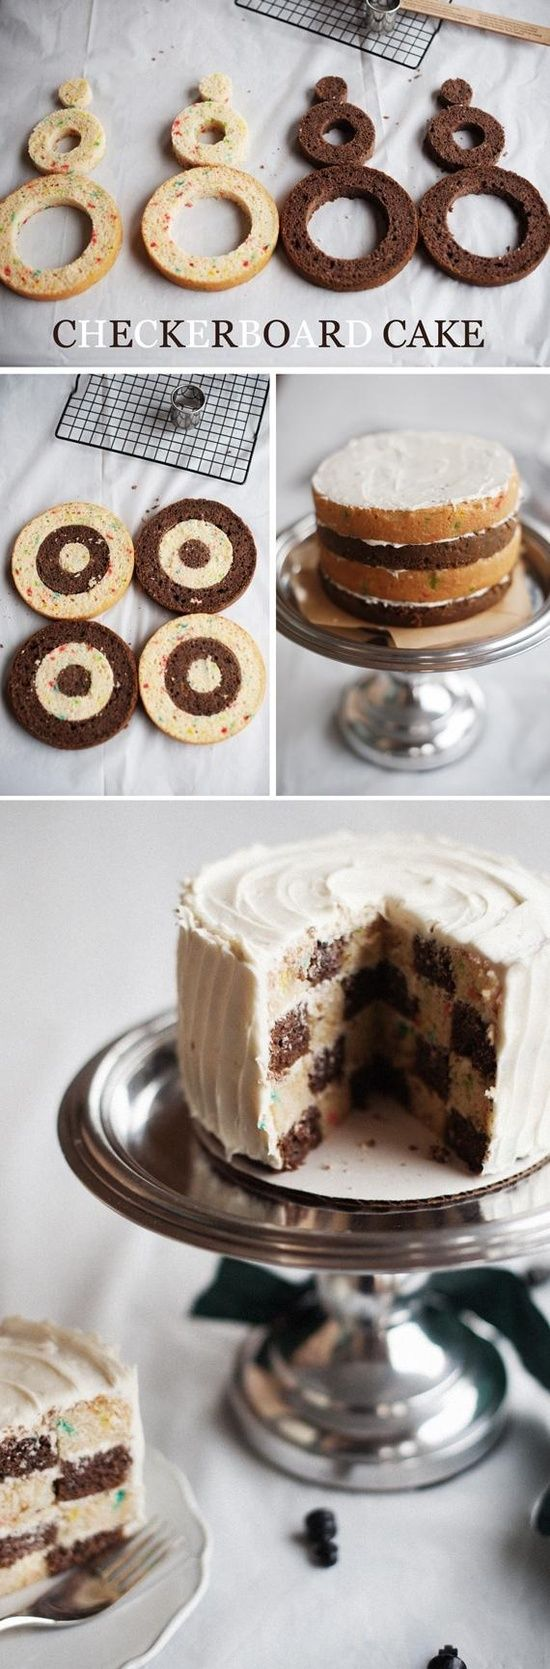 DO IT YOURSELF ~ A checkerboard birthday cake...so clever and fun